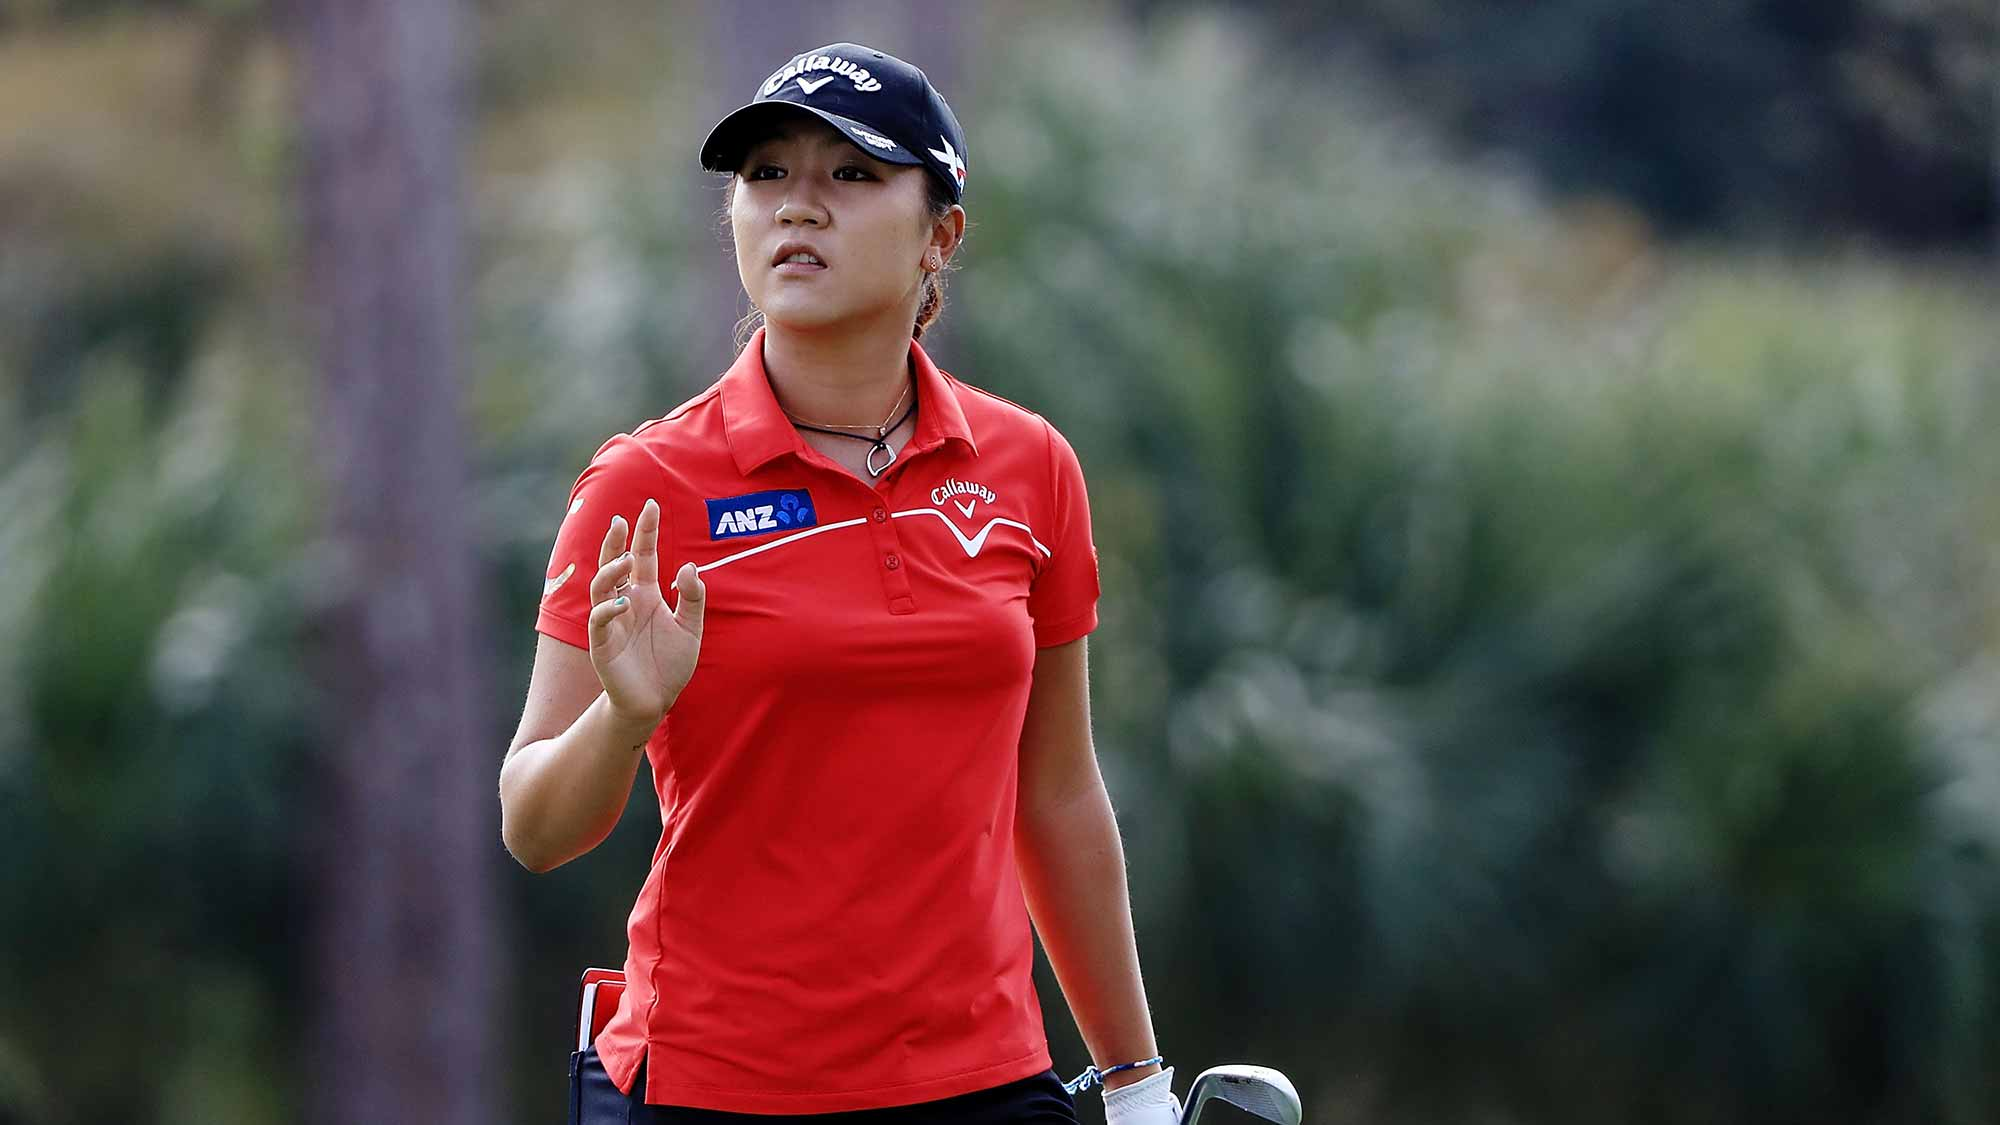 Lydia Ko of New Zealand waves to the crowd on the second hole during the second round of the CME Group Tour Championship at Tiburon Golf Club